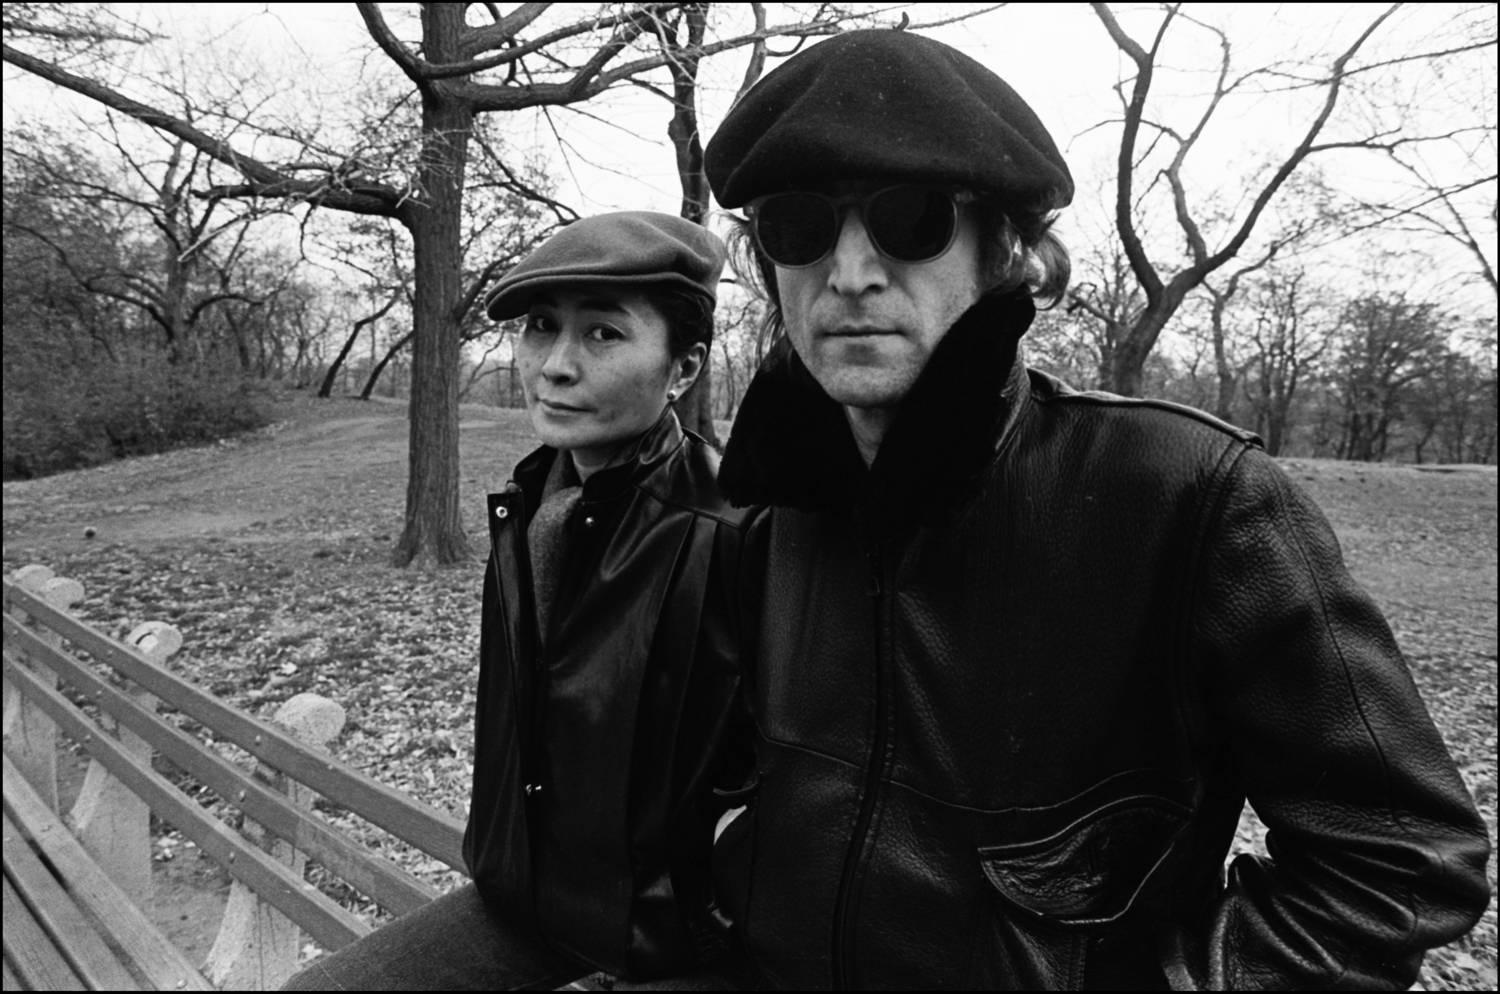 John and Yoko on a bench in Central Park, 1980